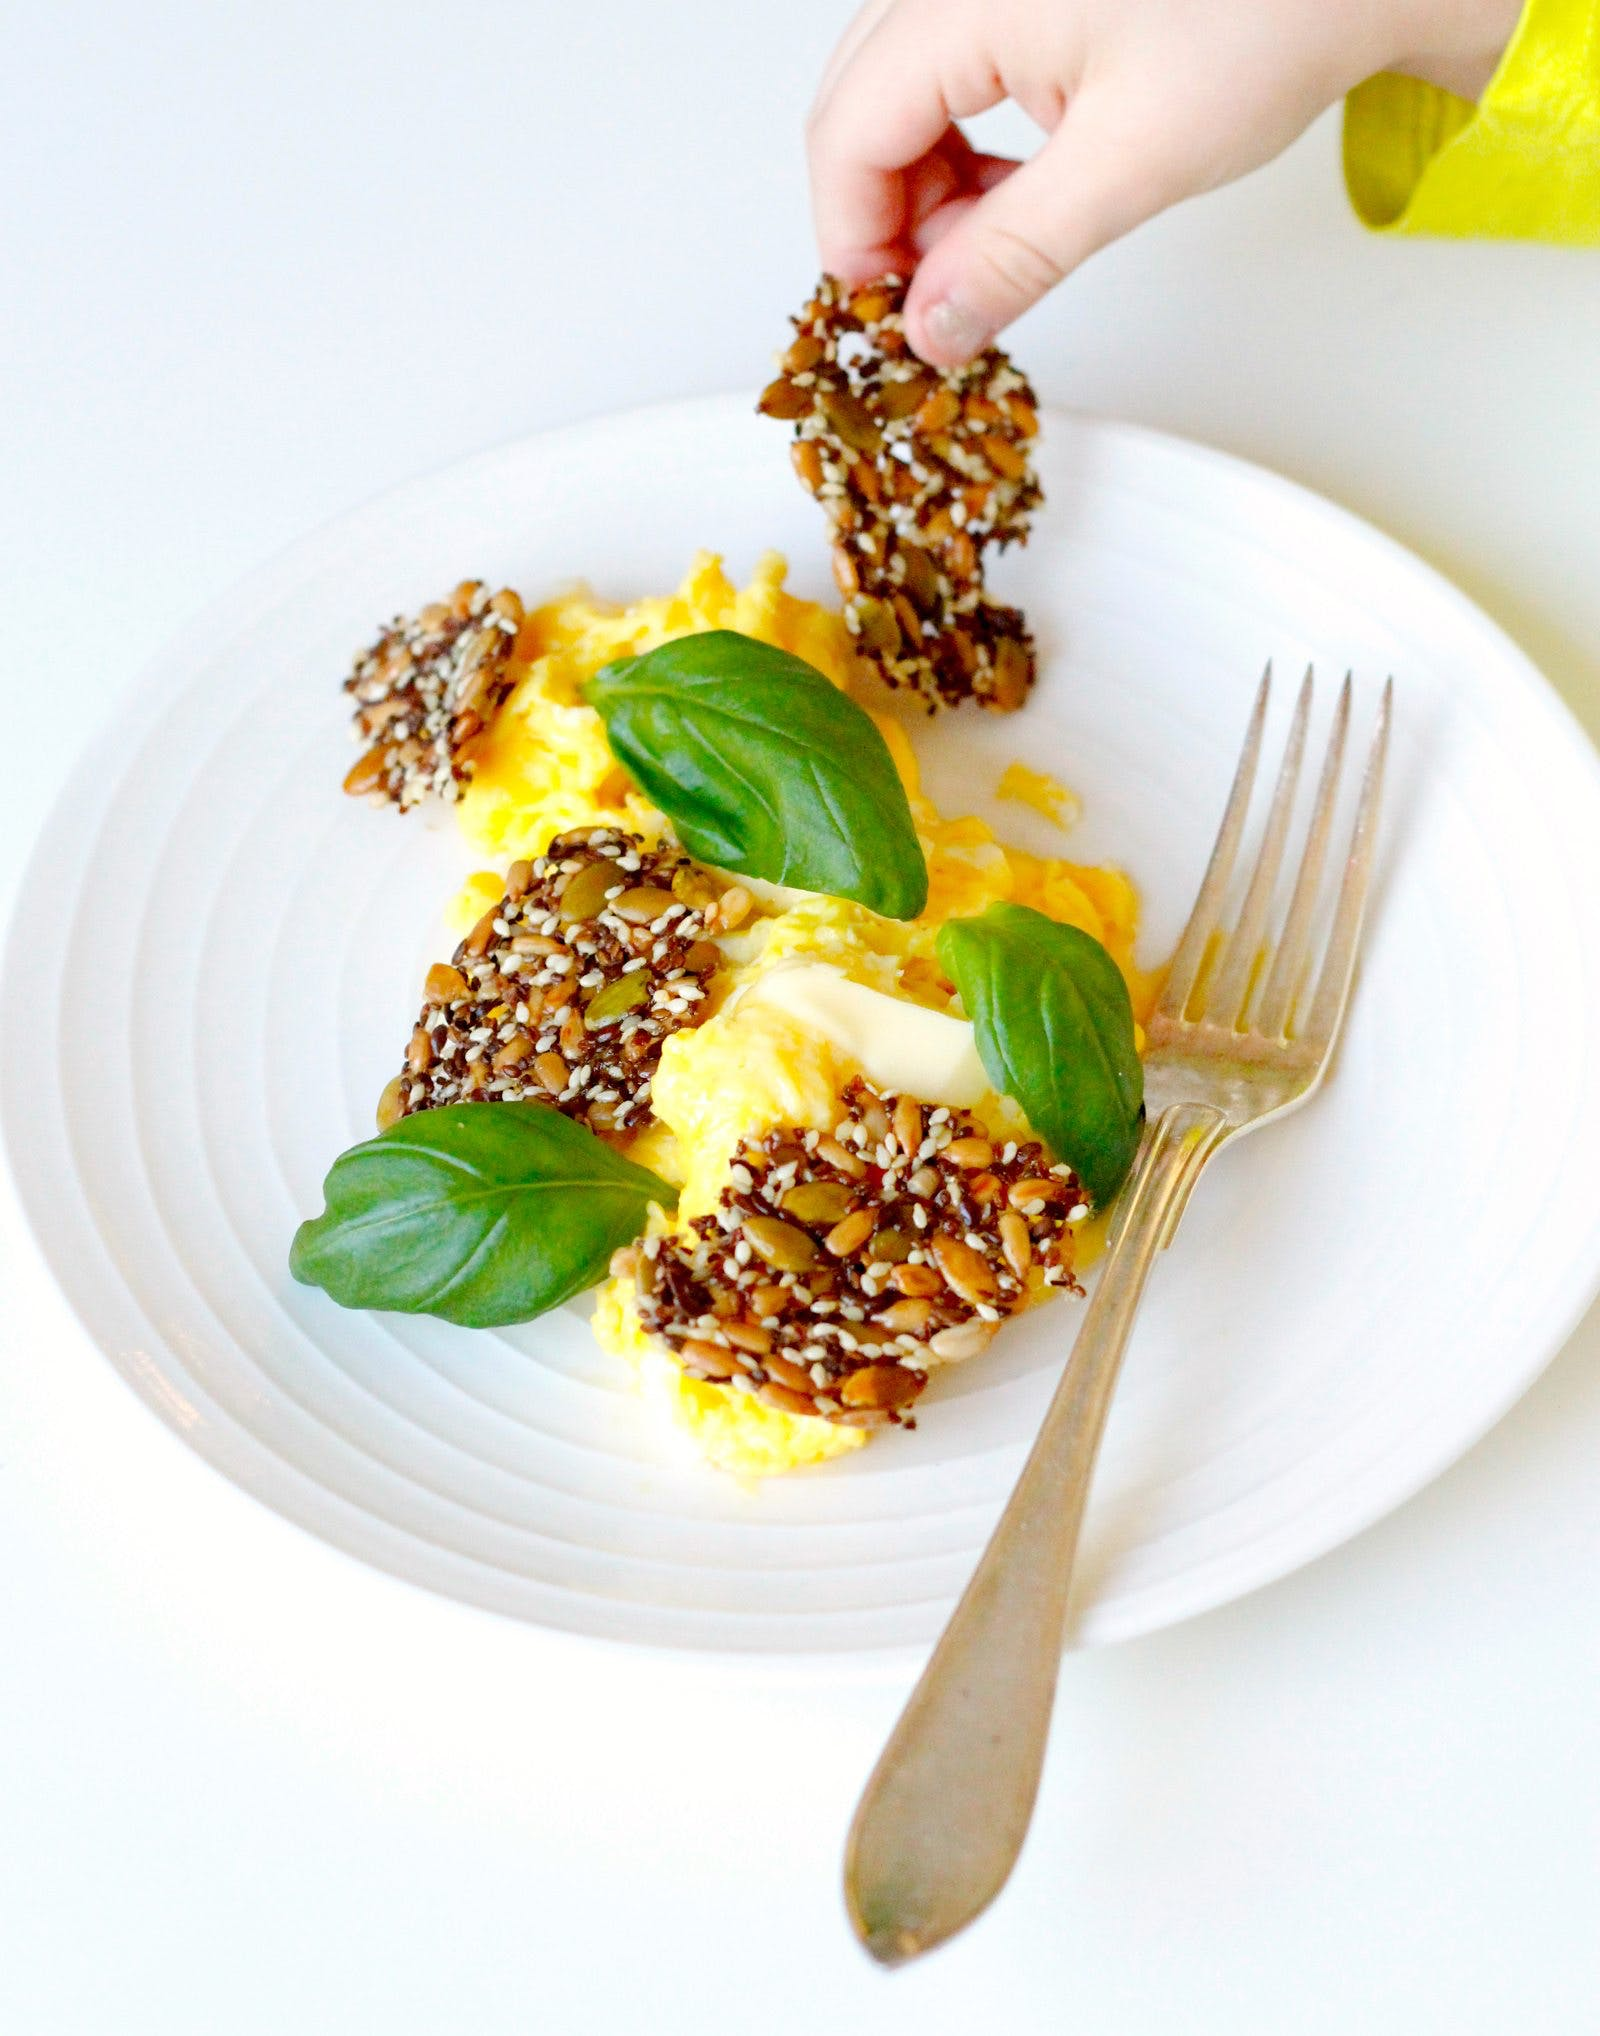 Scrambled eggs with basil and butter